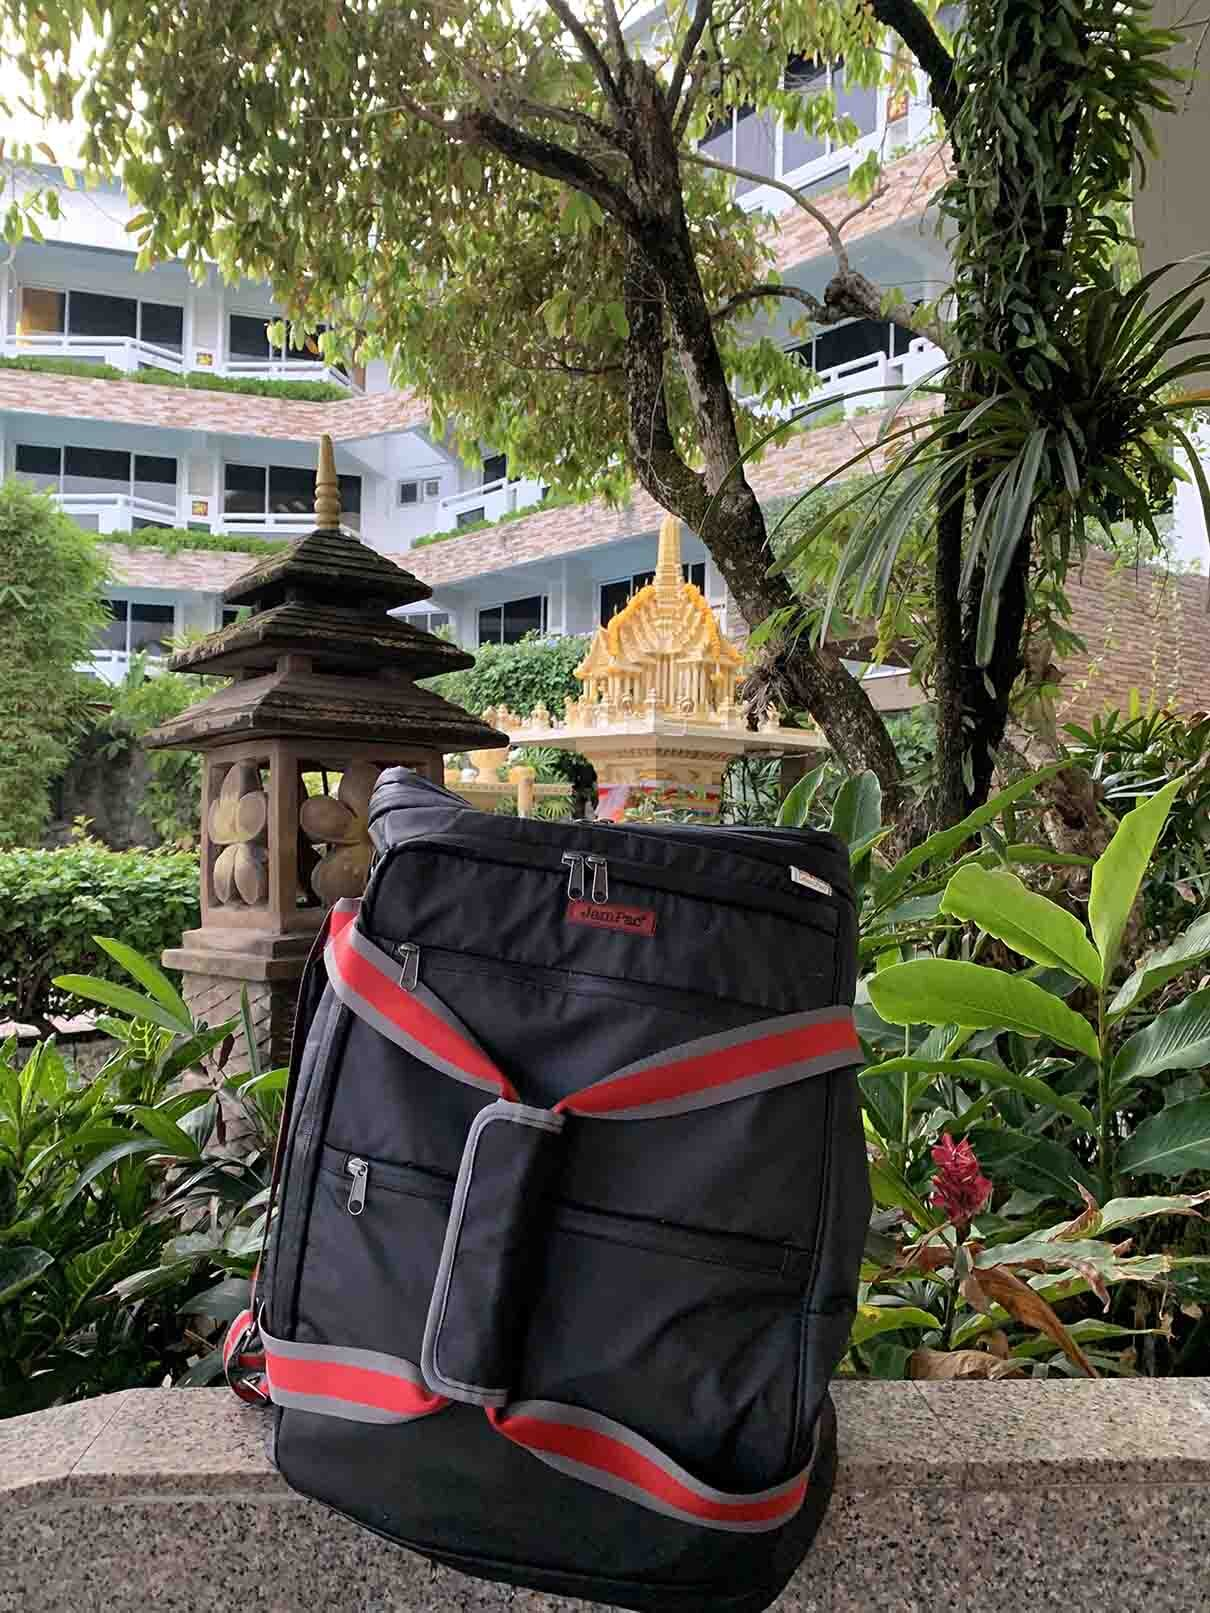 JamPac, a large, pliable & versatile backpack. A great travel companion, ready to travel with you anywhere! It's in Phuket currently! Get yours!